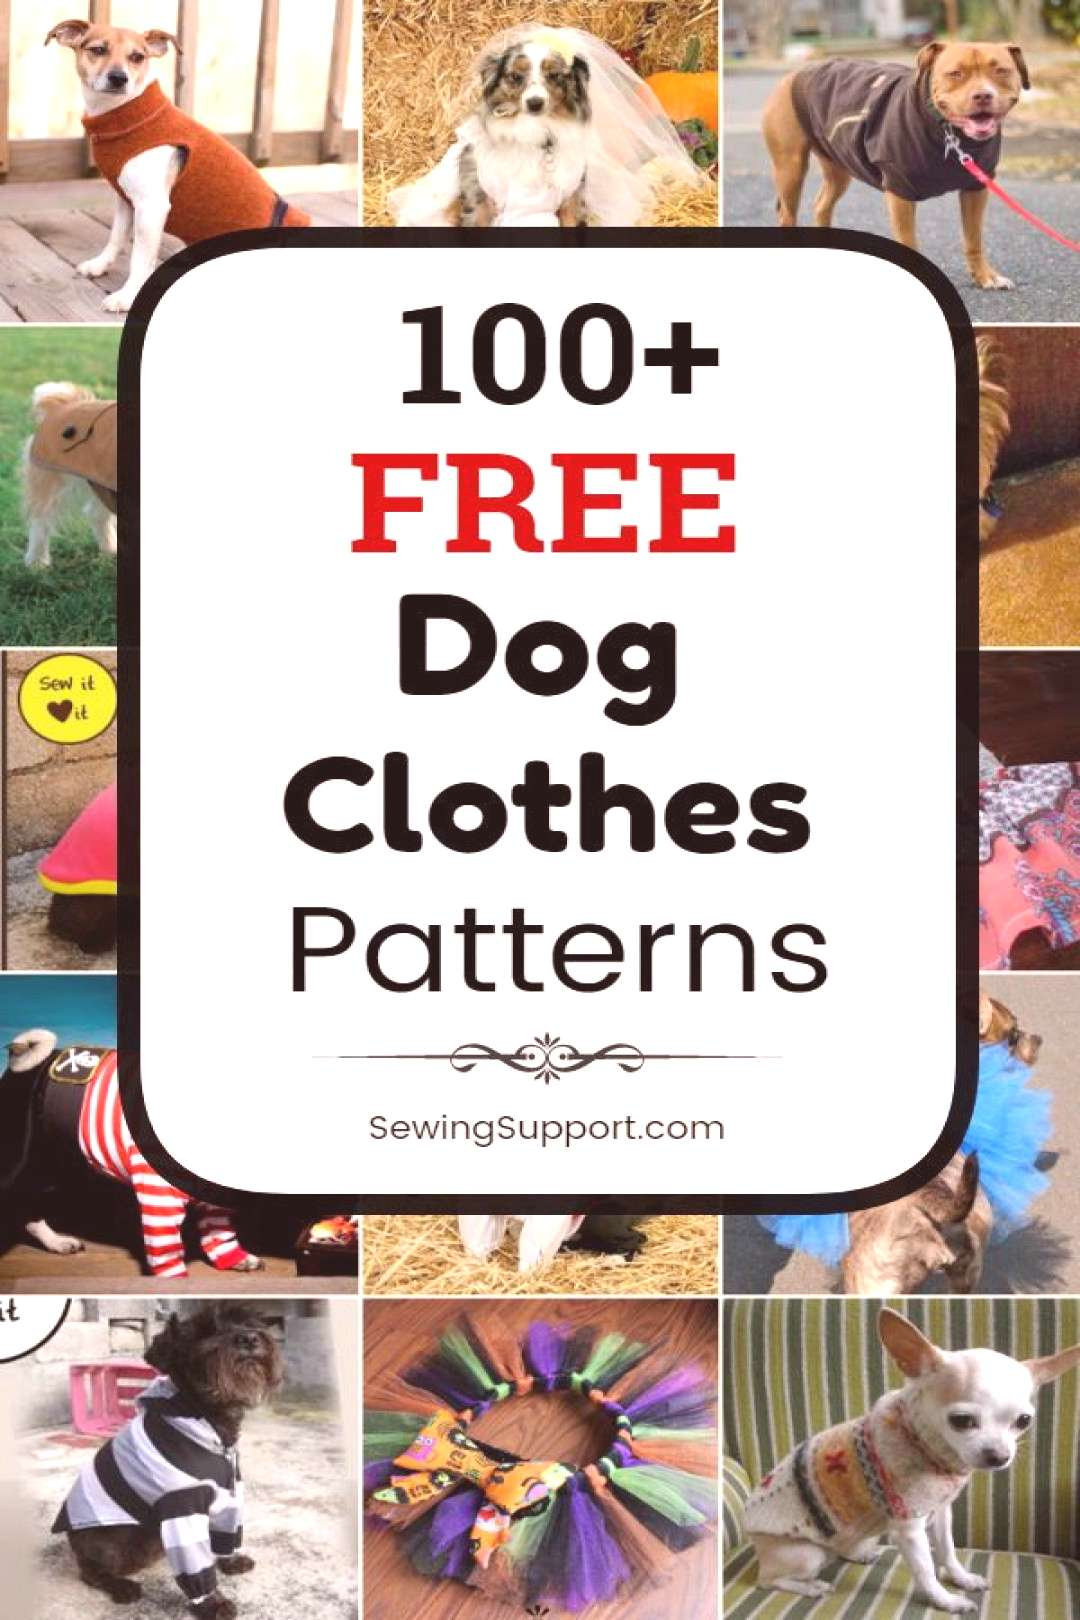 Dog DIY: 100+ free dog clothes patterns, tutorials, and diy sewing projects. Sew dog t-shirts, dres